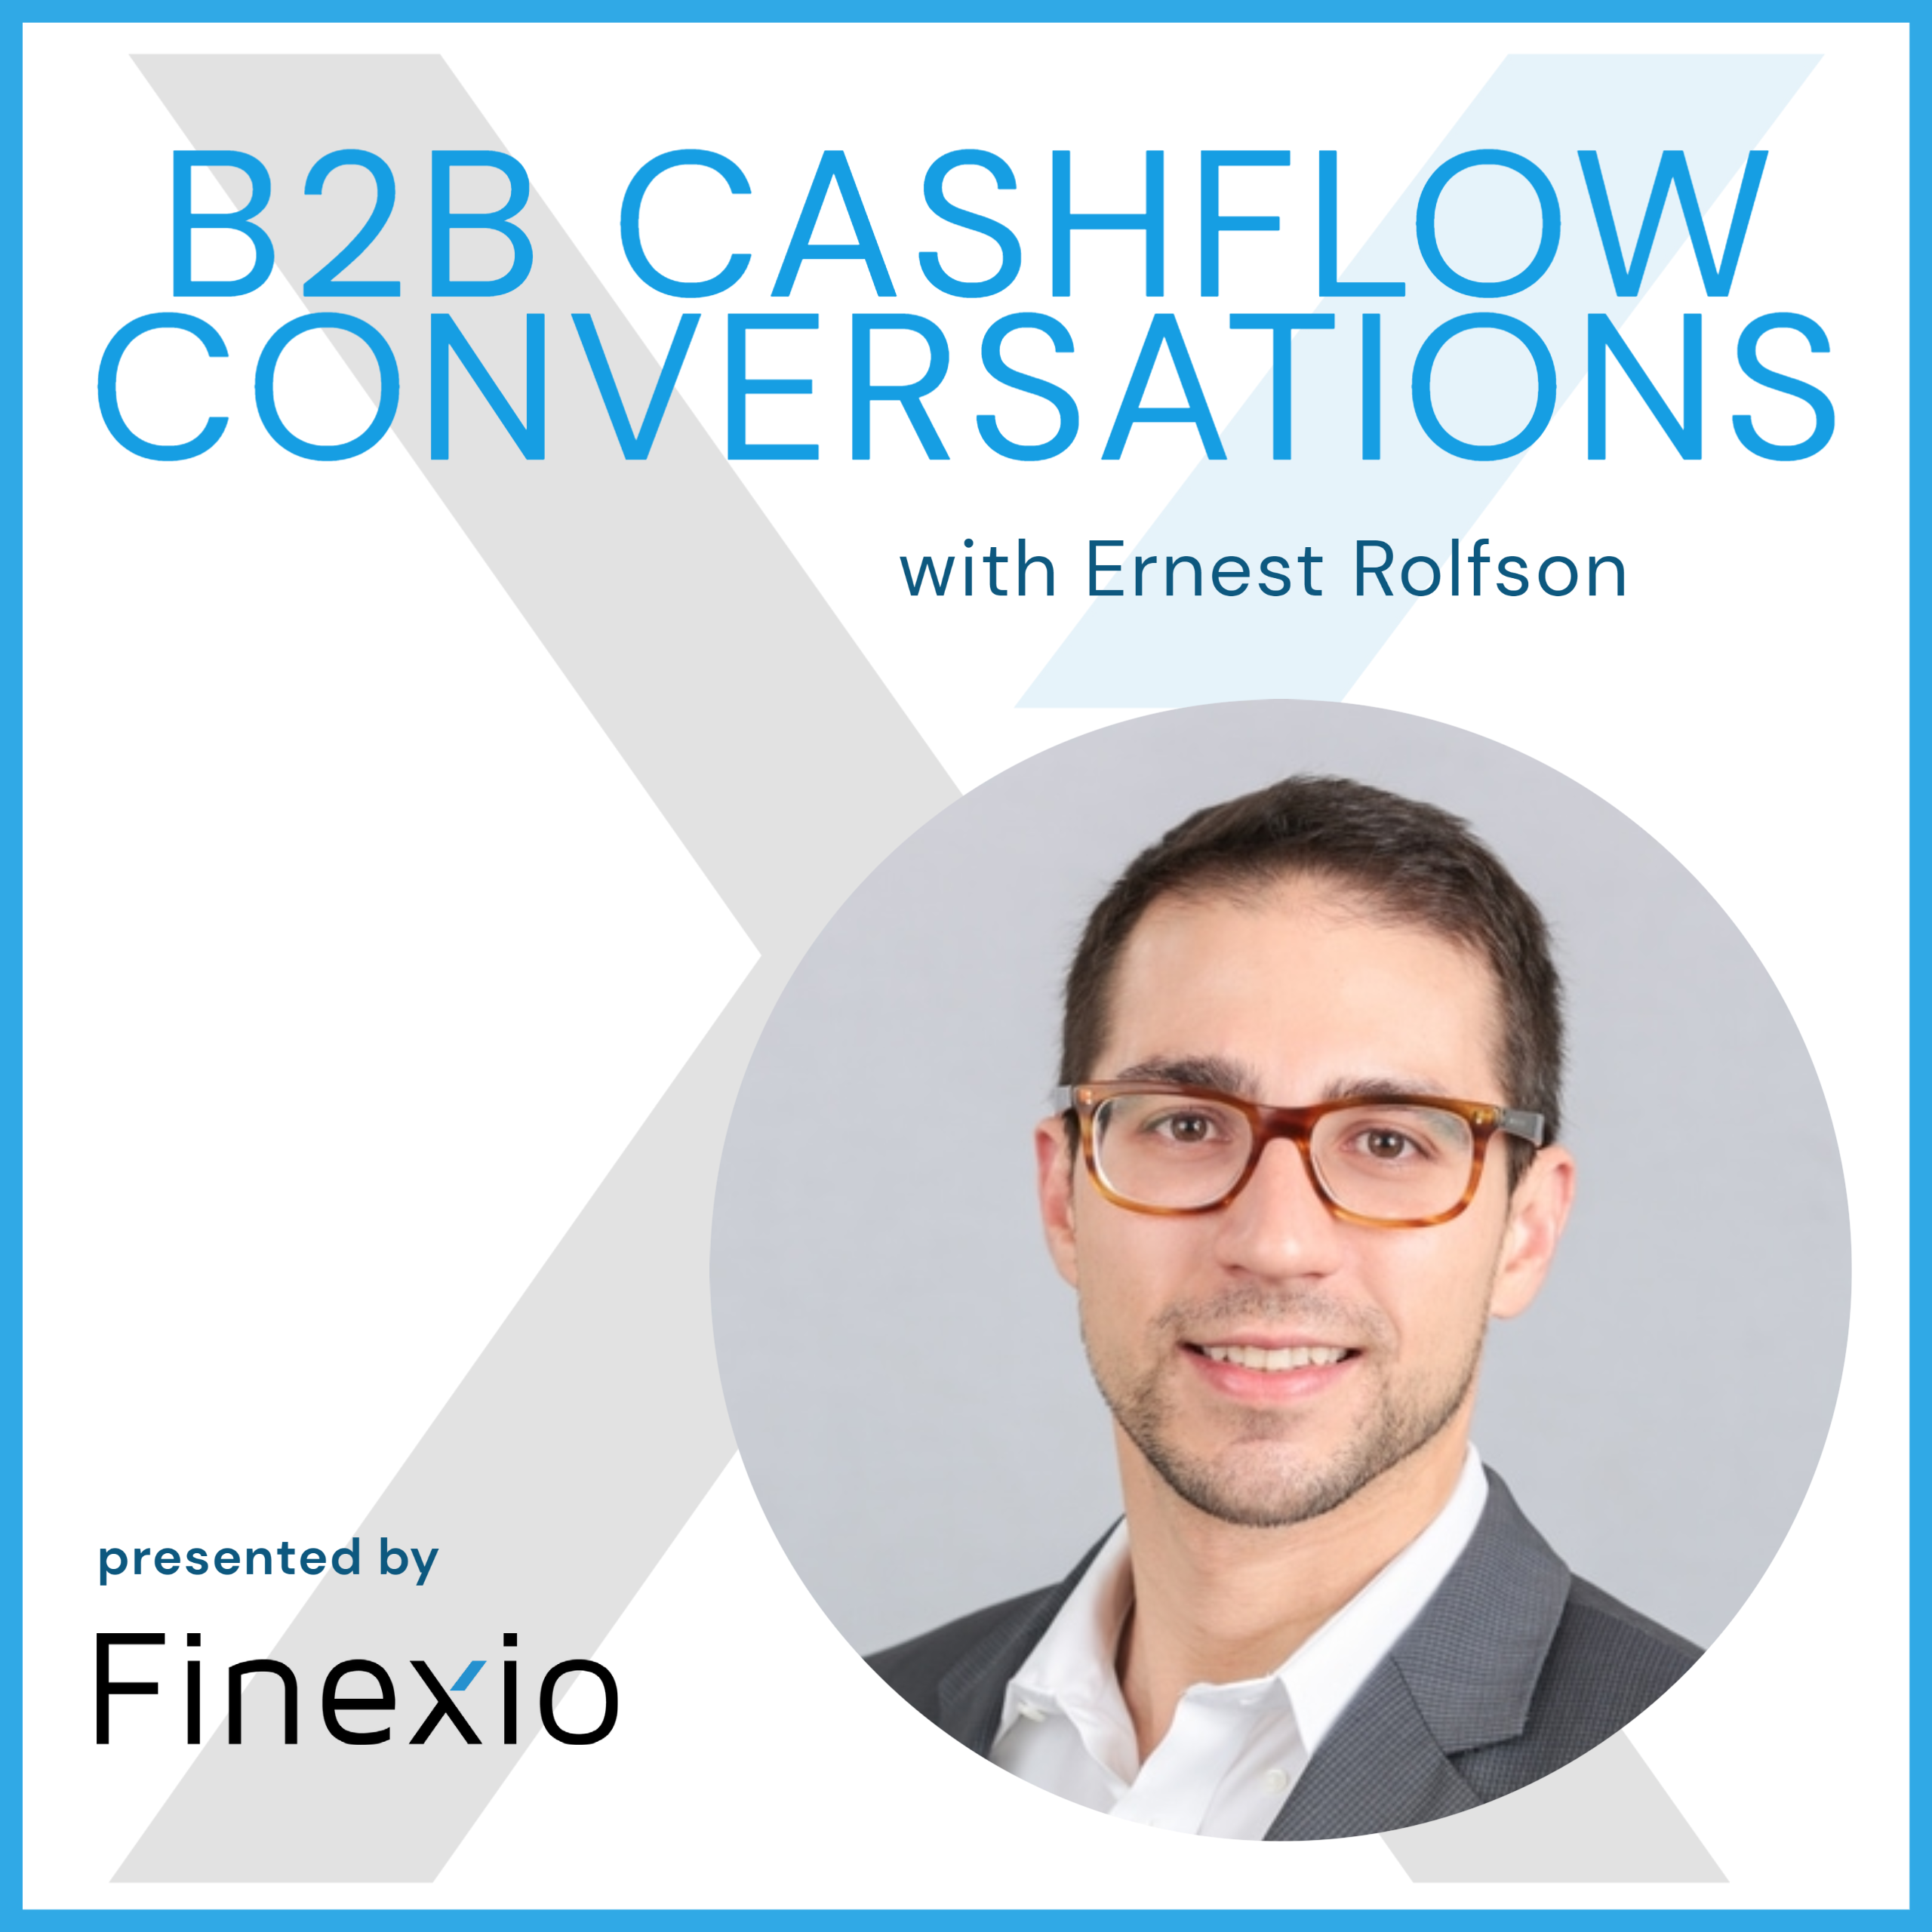 Image of Ernest Rolfson, founder and ceo of Finexio, and host of the Paying It Forward podcast.